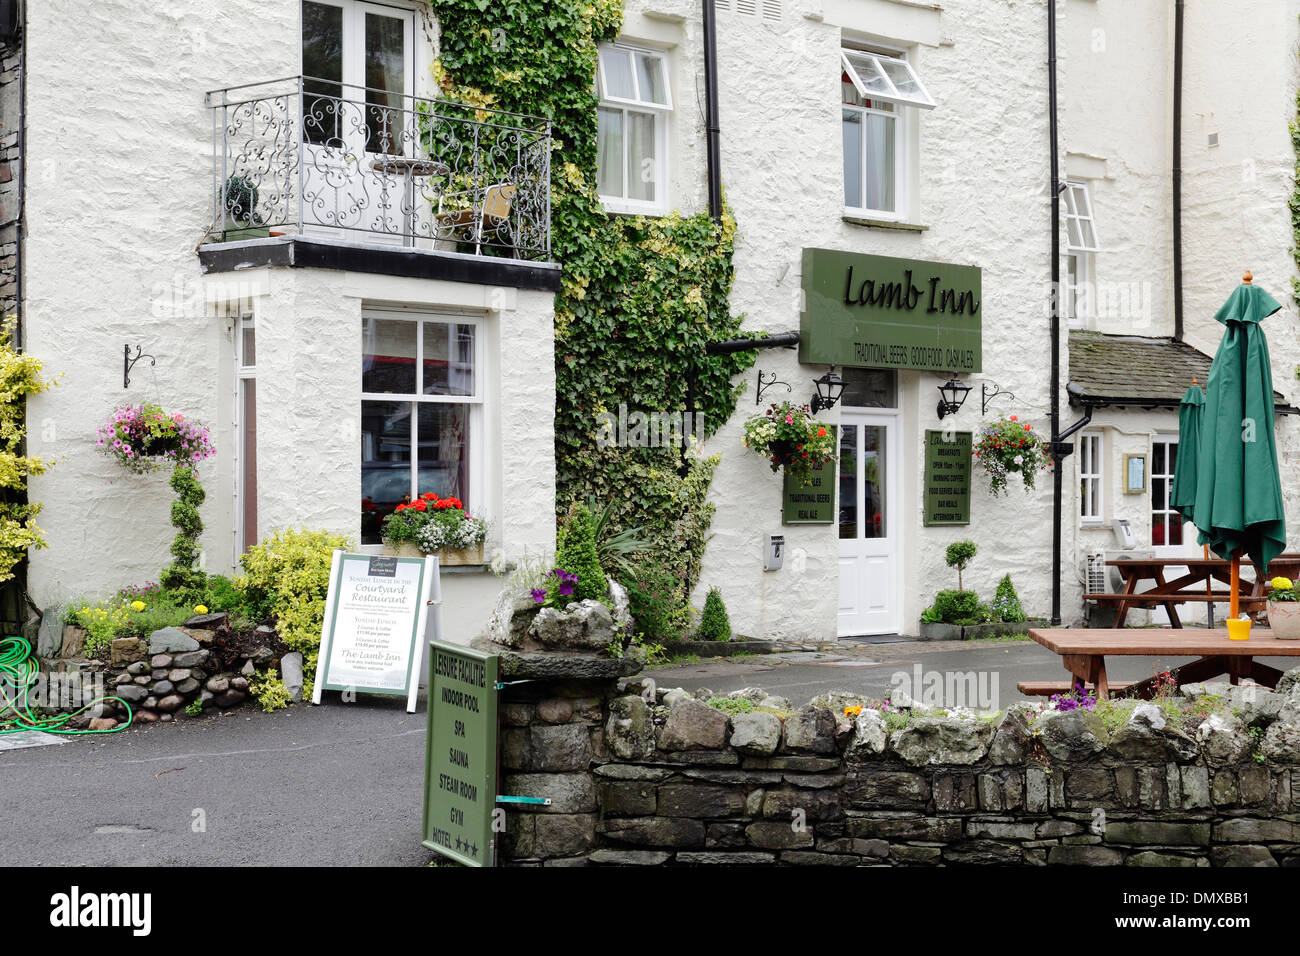 The Lamb Inn traditional village pub and restaurant, part of the Red Lion Hotel in Grasmere, Lake District, Cumbria, England, UK - Stock Image